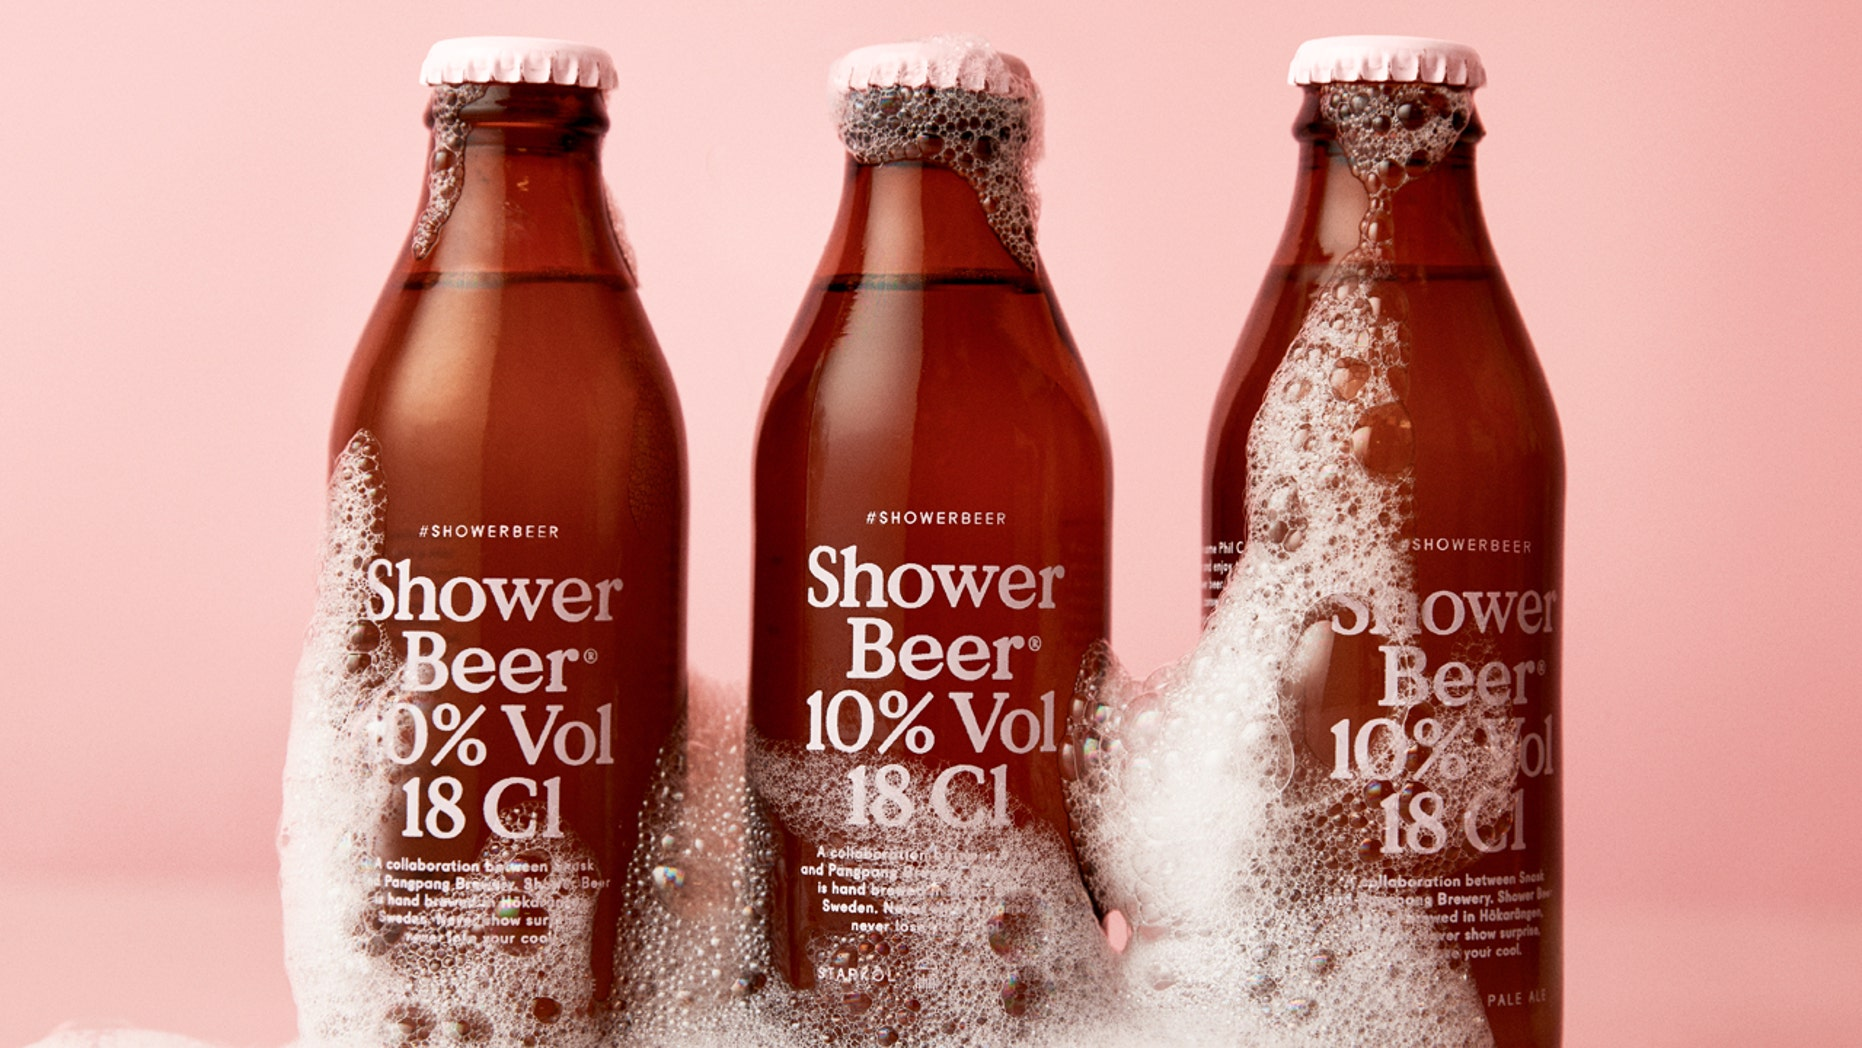 This beer is made for bath time.